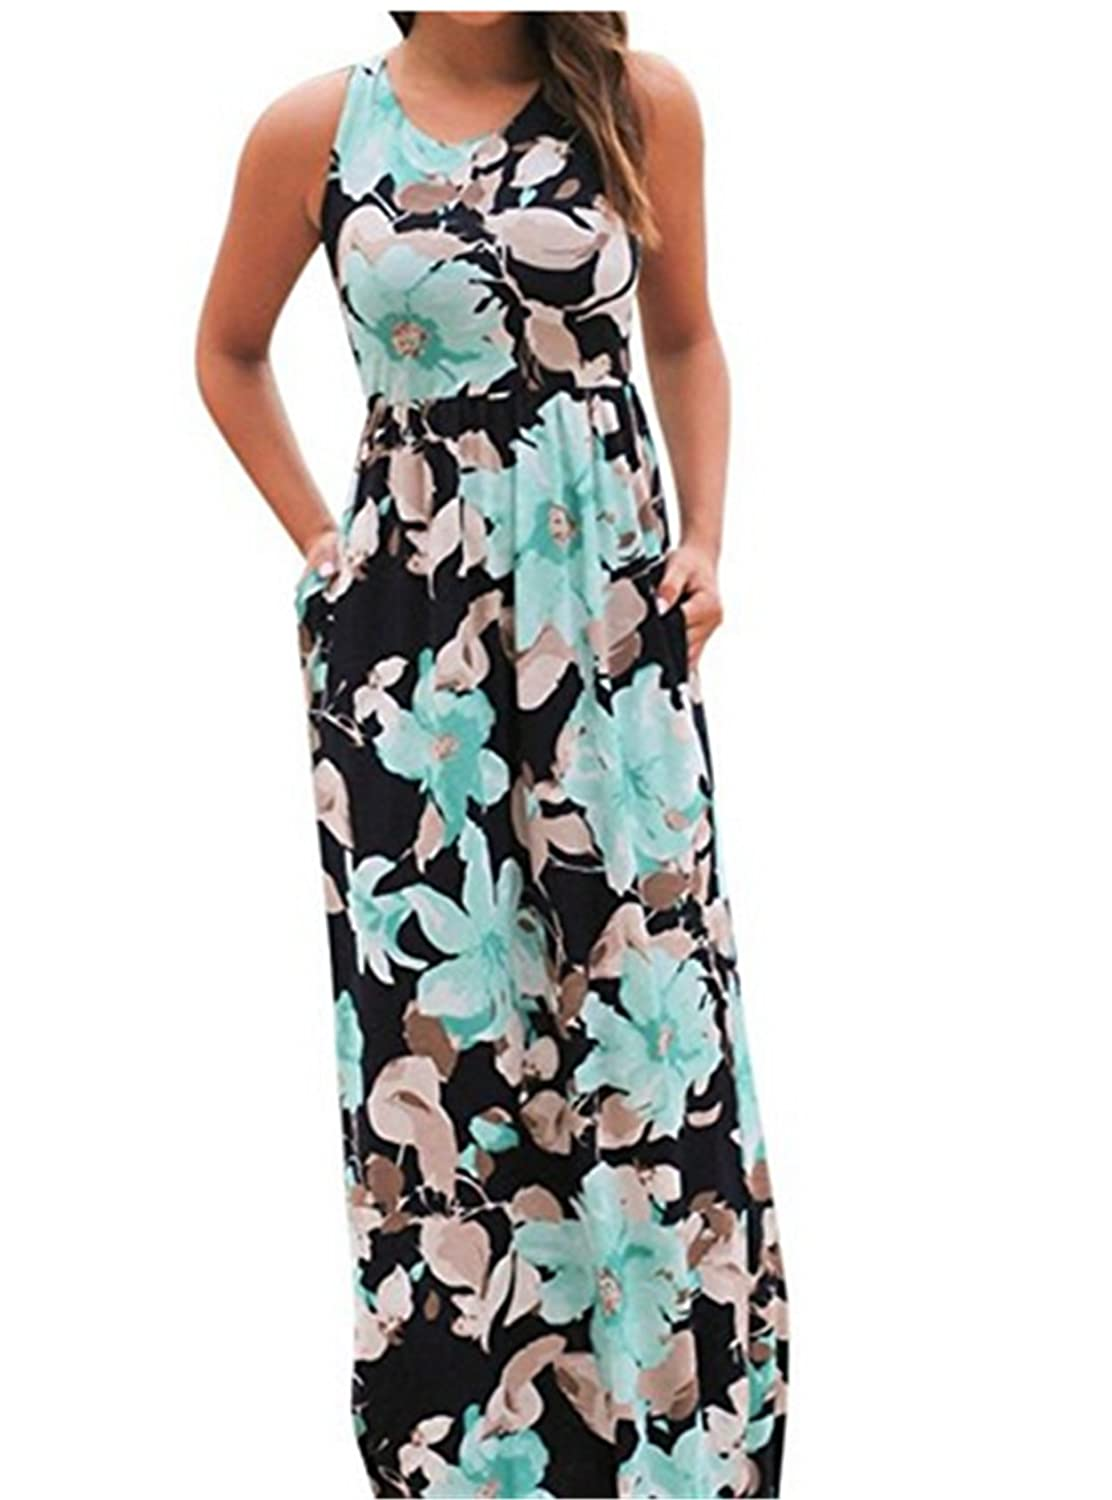 383bc288bf2 Top 10 wholesale Plus Size Maxi Sundresses - Chinabrands.com